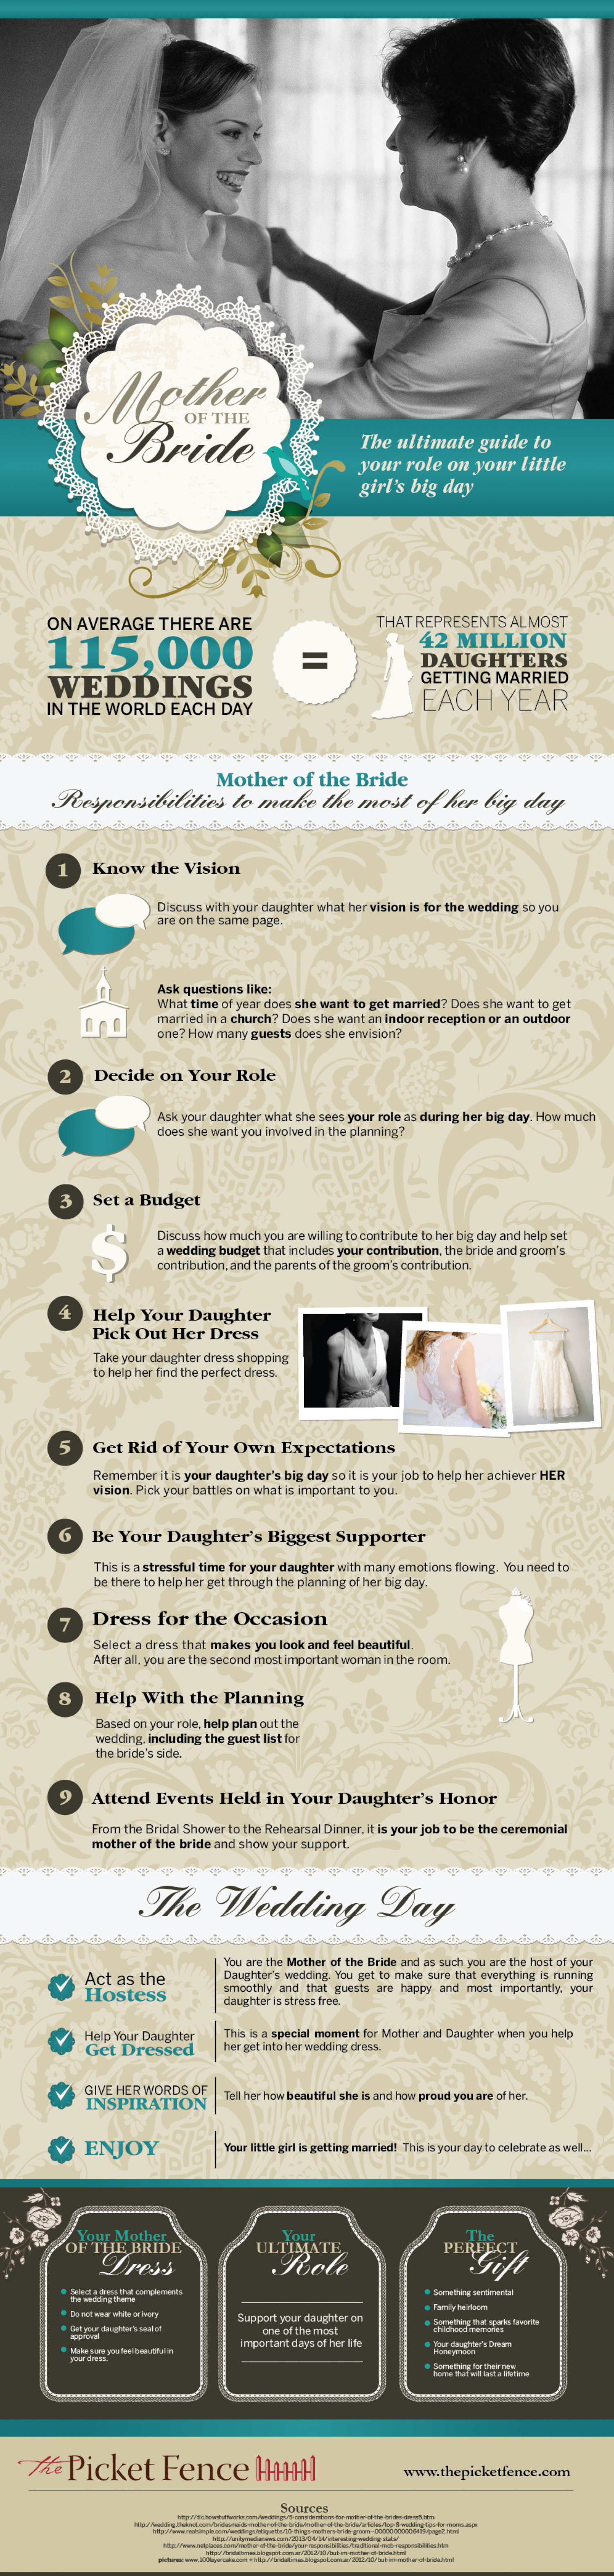 Mother of the Bride - The Ultimate Guide  Infographic